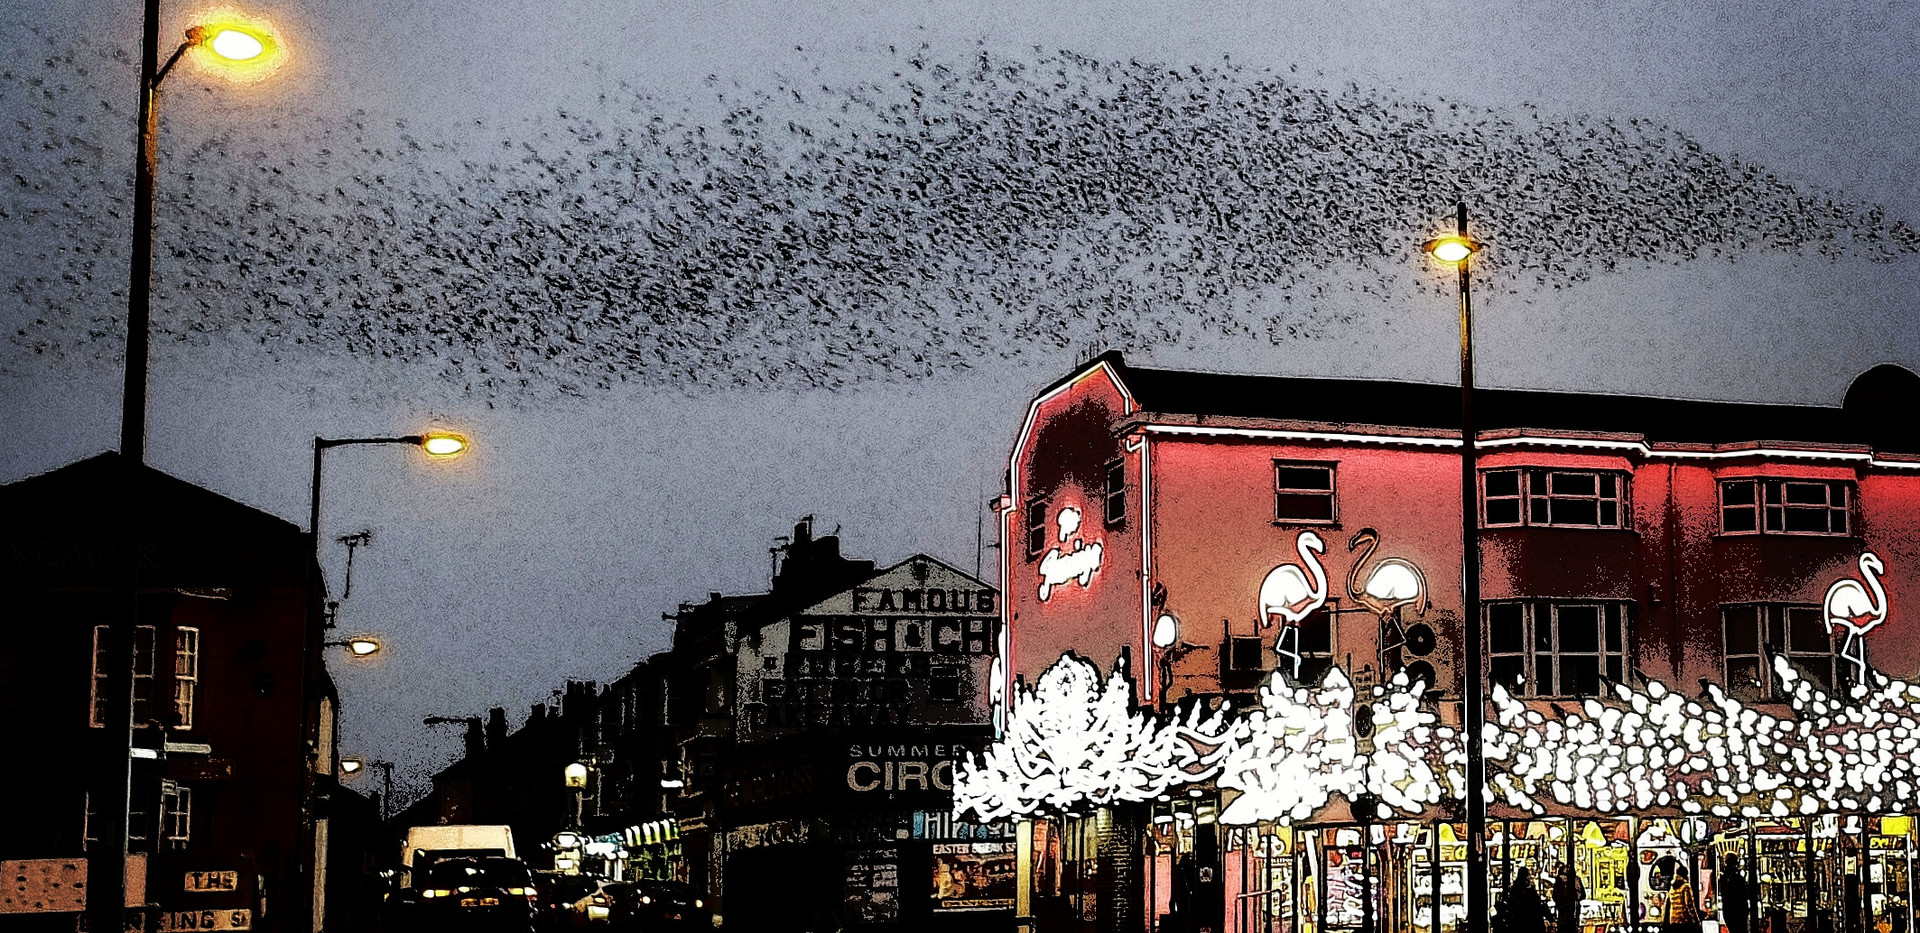 Great Yarmouth seafront: a shoal of birds, a murmuration of fish